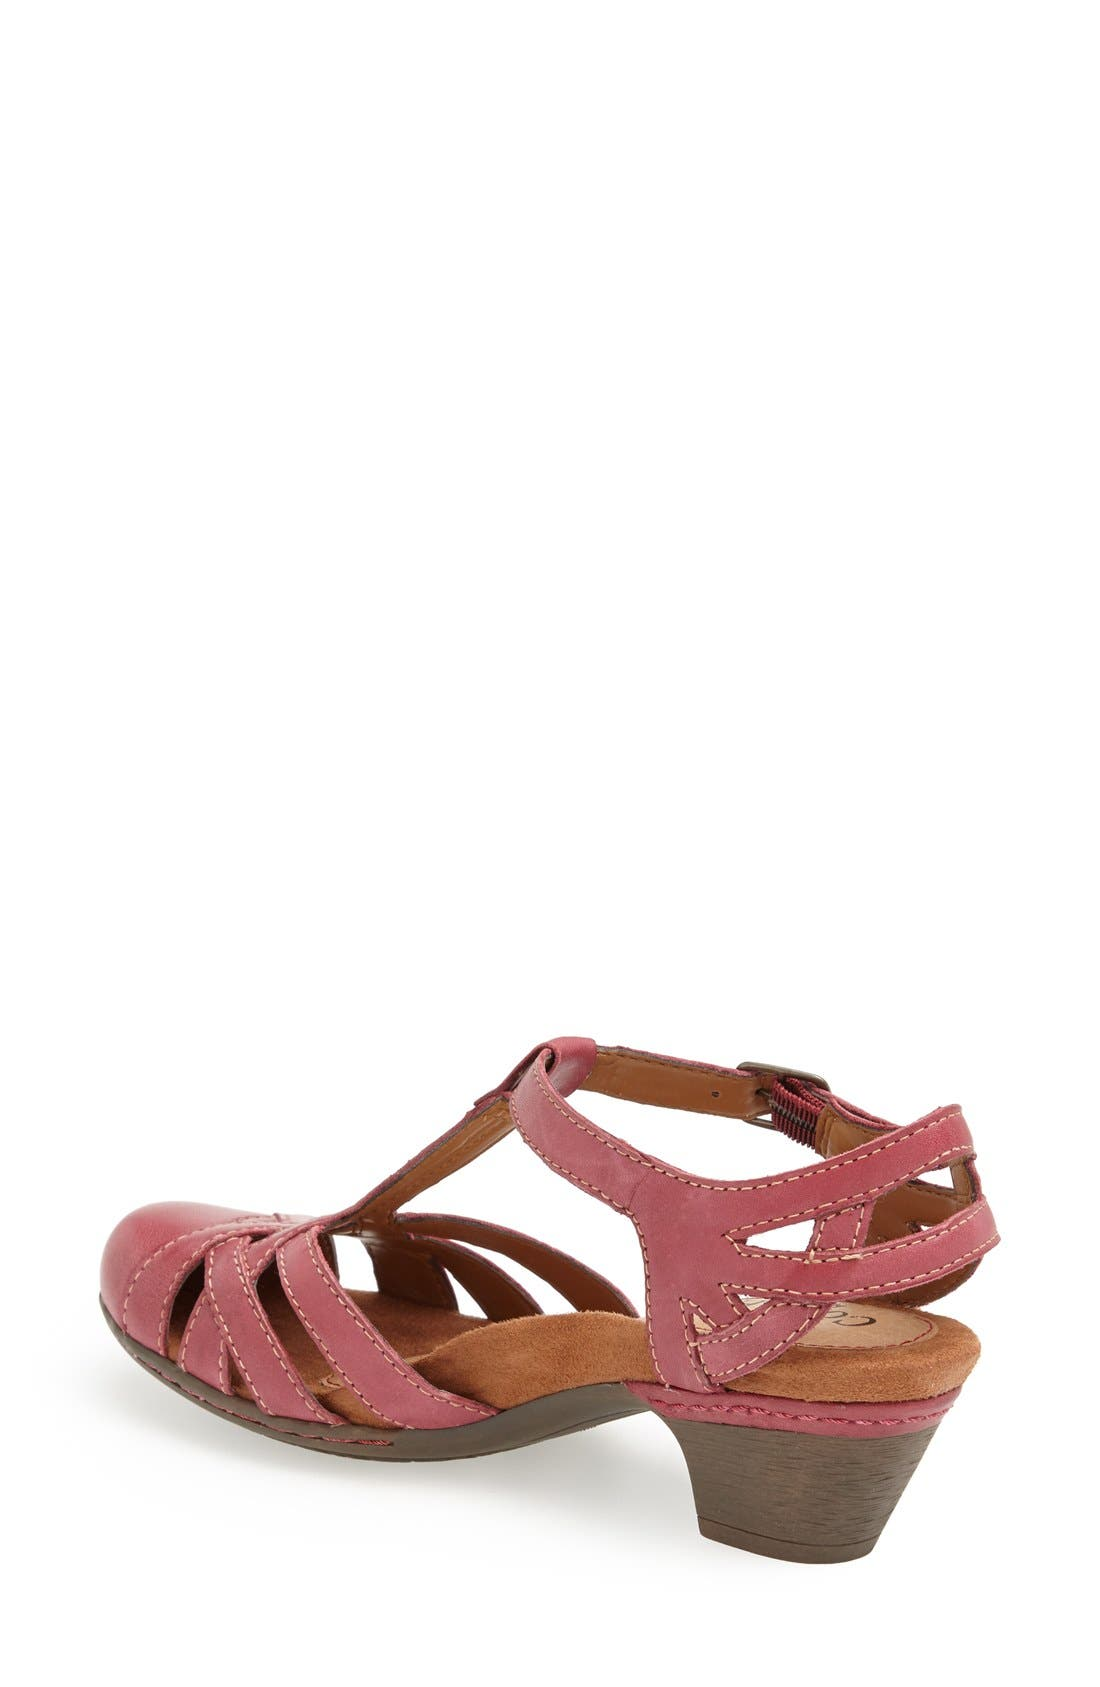 'Aubrey' Sandal,                             Alternate thumbnail 48, color,